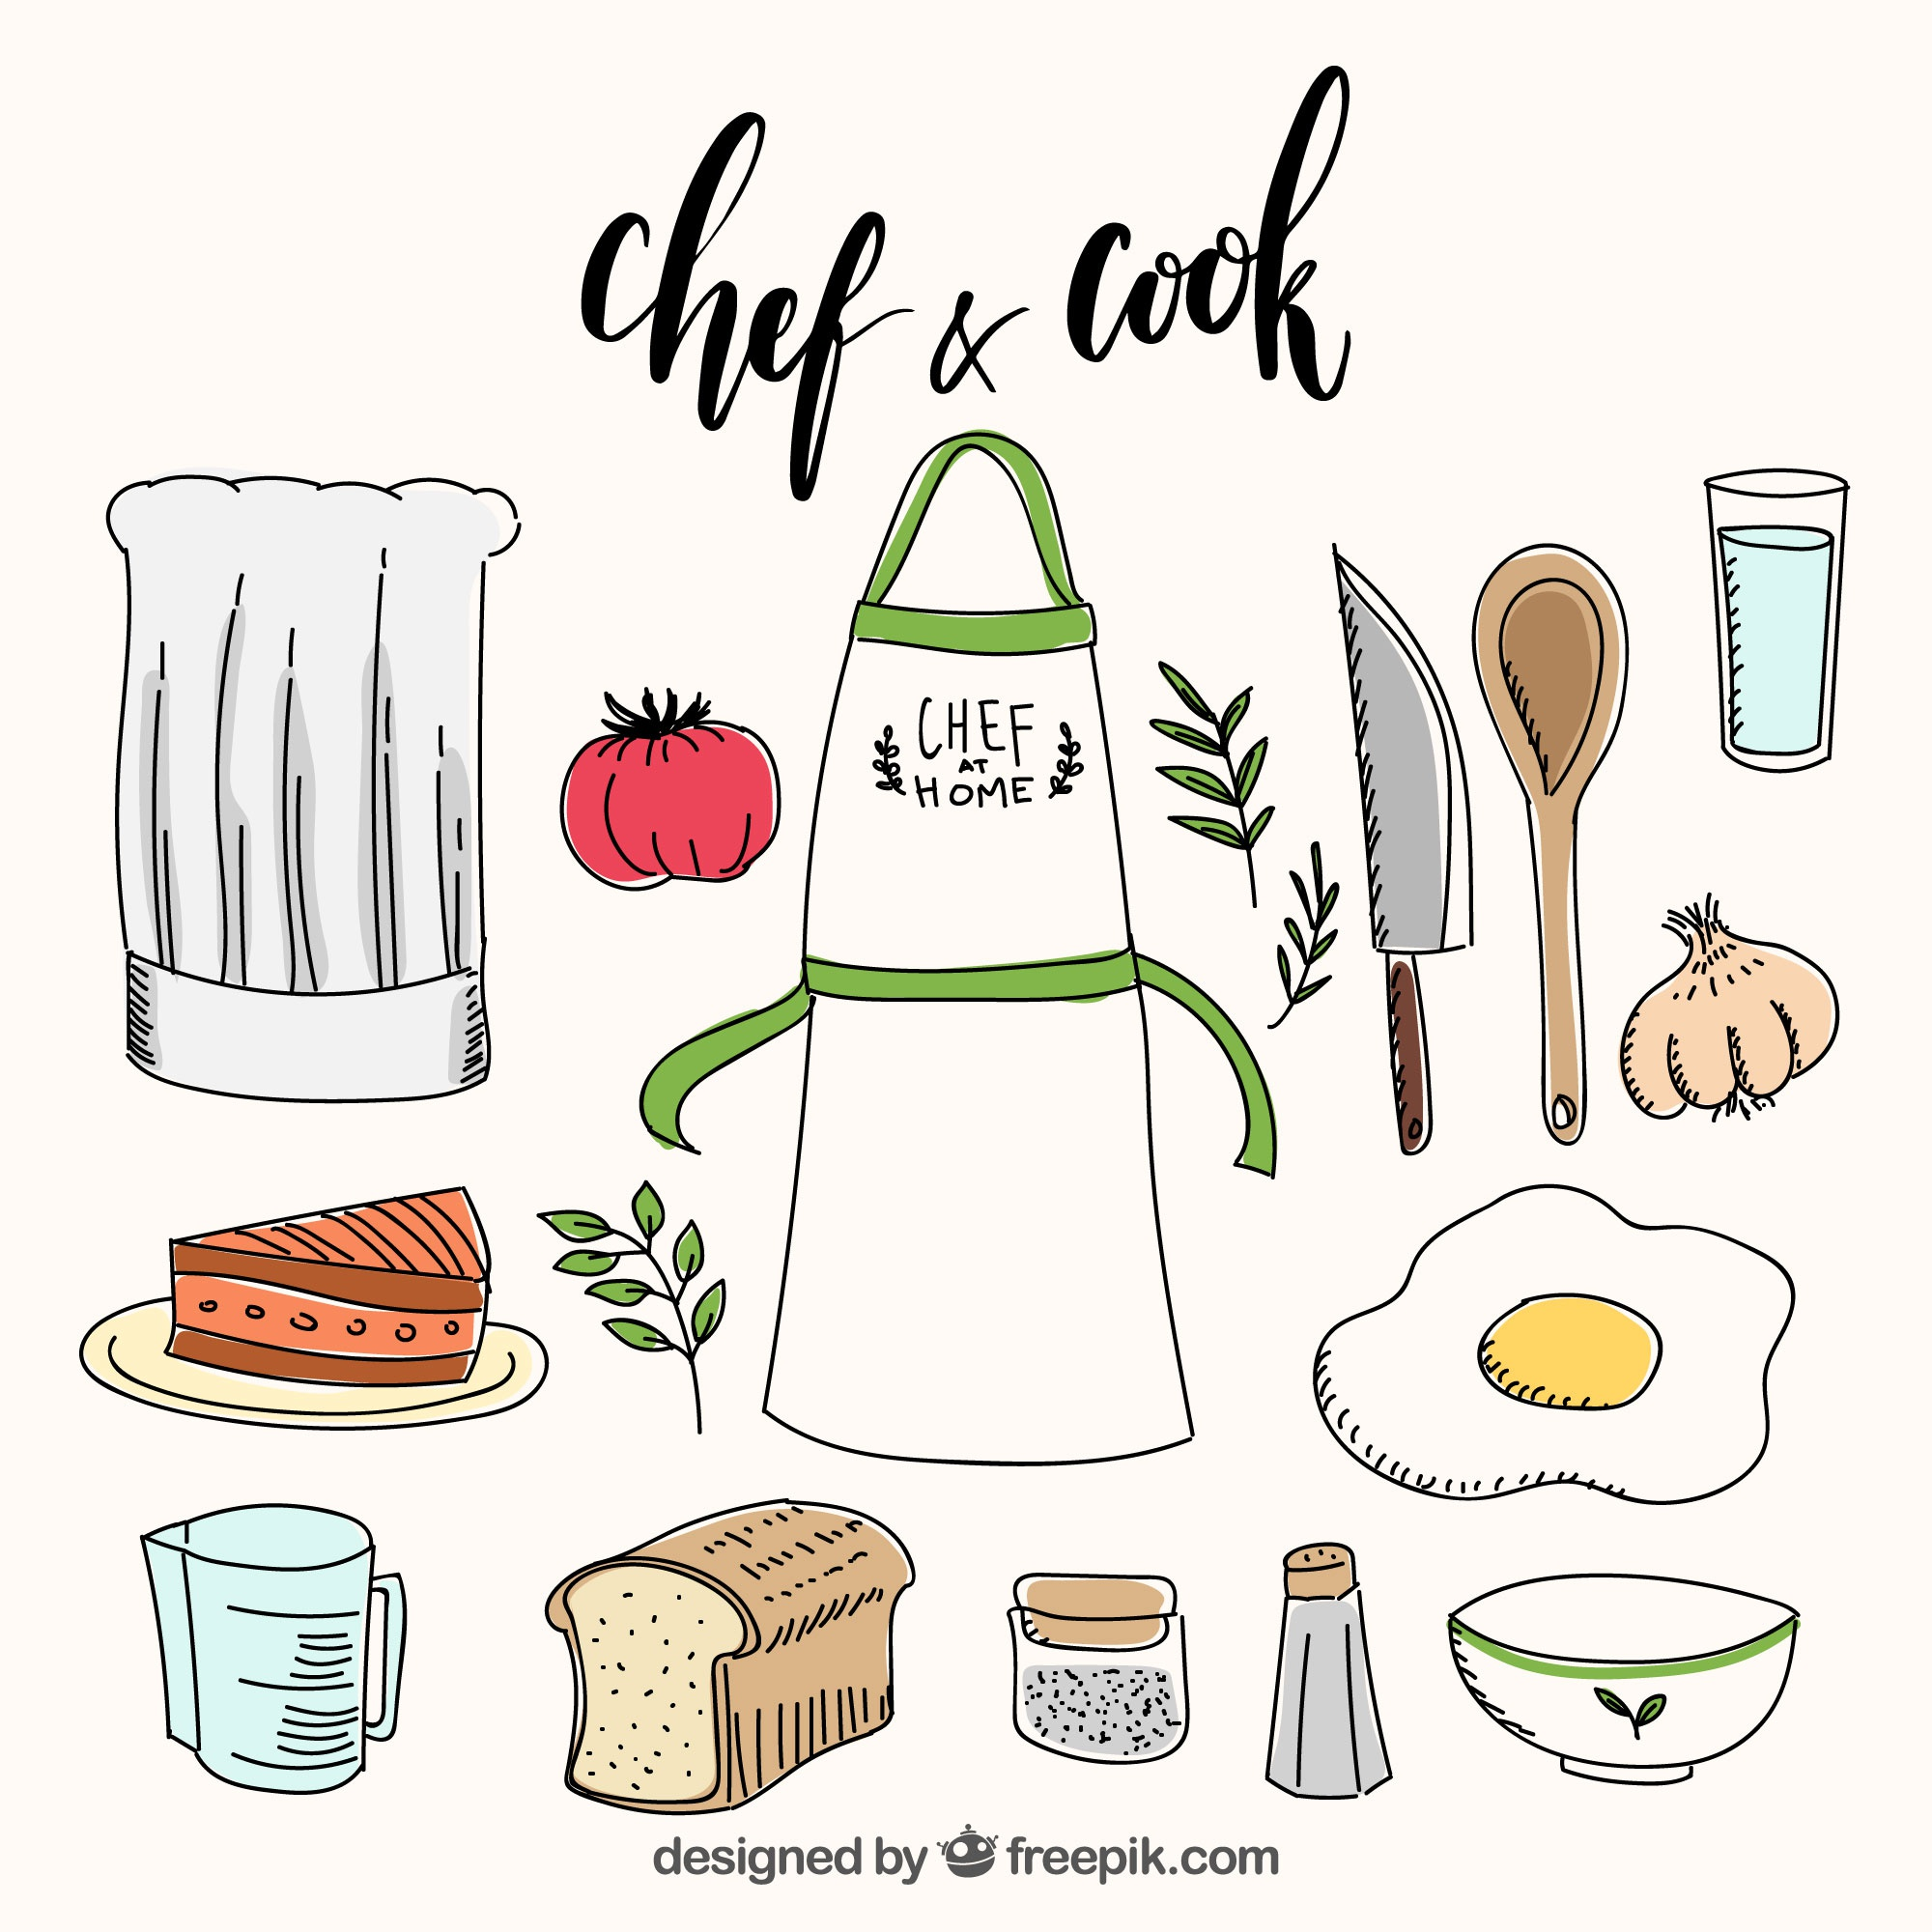 Apron with ingredients and some kitchen objects